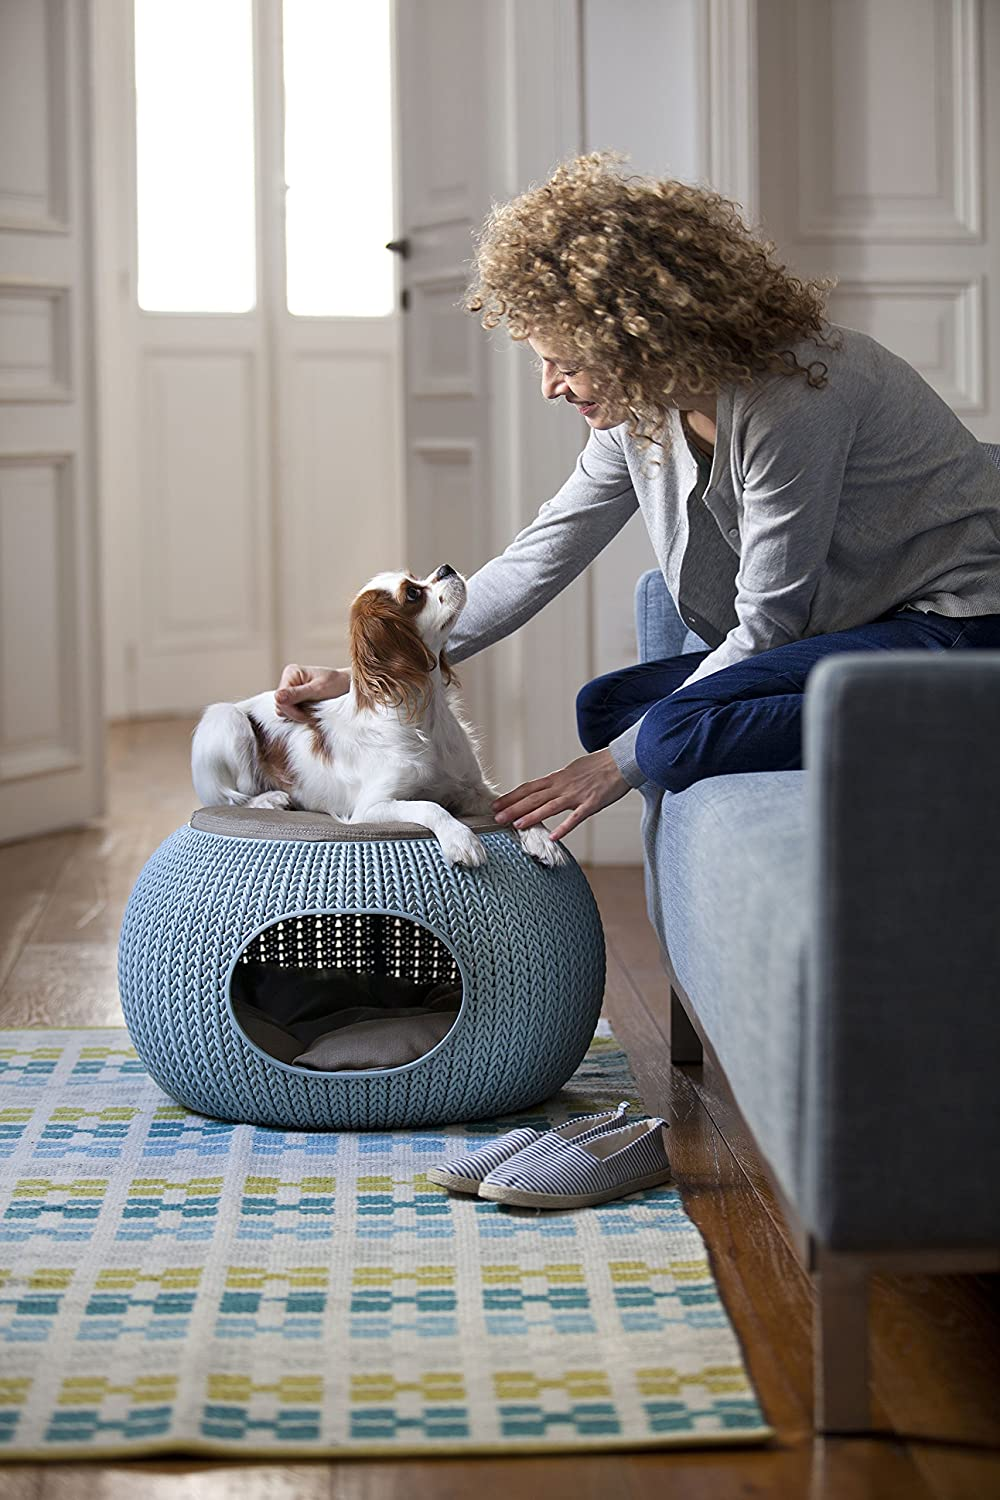 Top 10 Dog Beds And Furniture Products: Ease Of Use, Comfort & Convenience 14